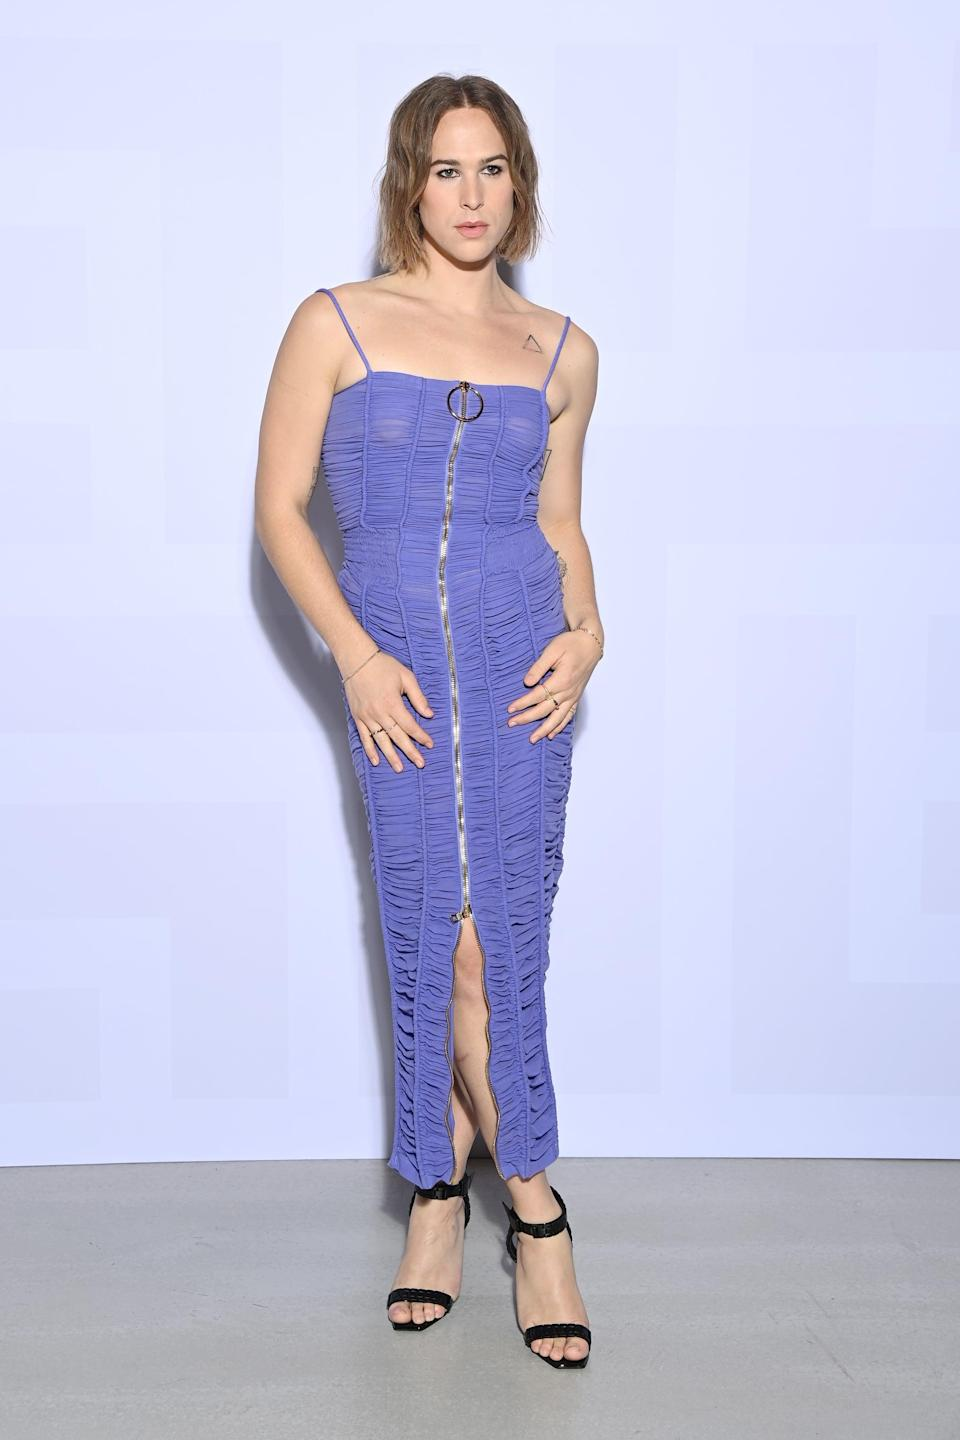 <p>Wow, wow, WOW! Tommy definitely turned heads when she waltzed into Balmain's show in this gorgeous lilac dress custom-designed by Balmain's very own Olivier Rousteing.</p>